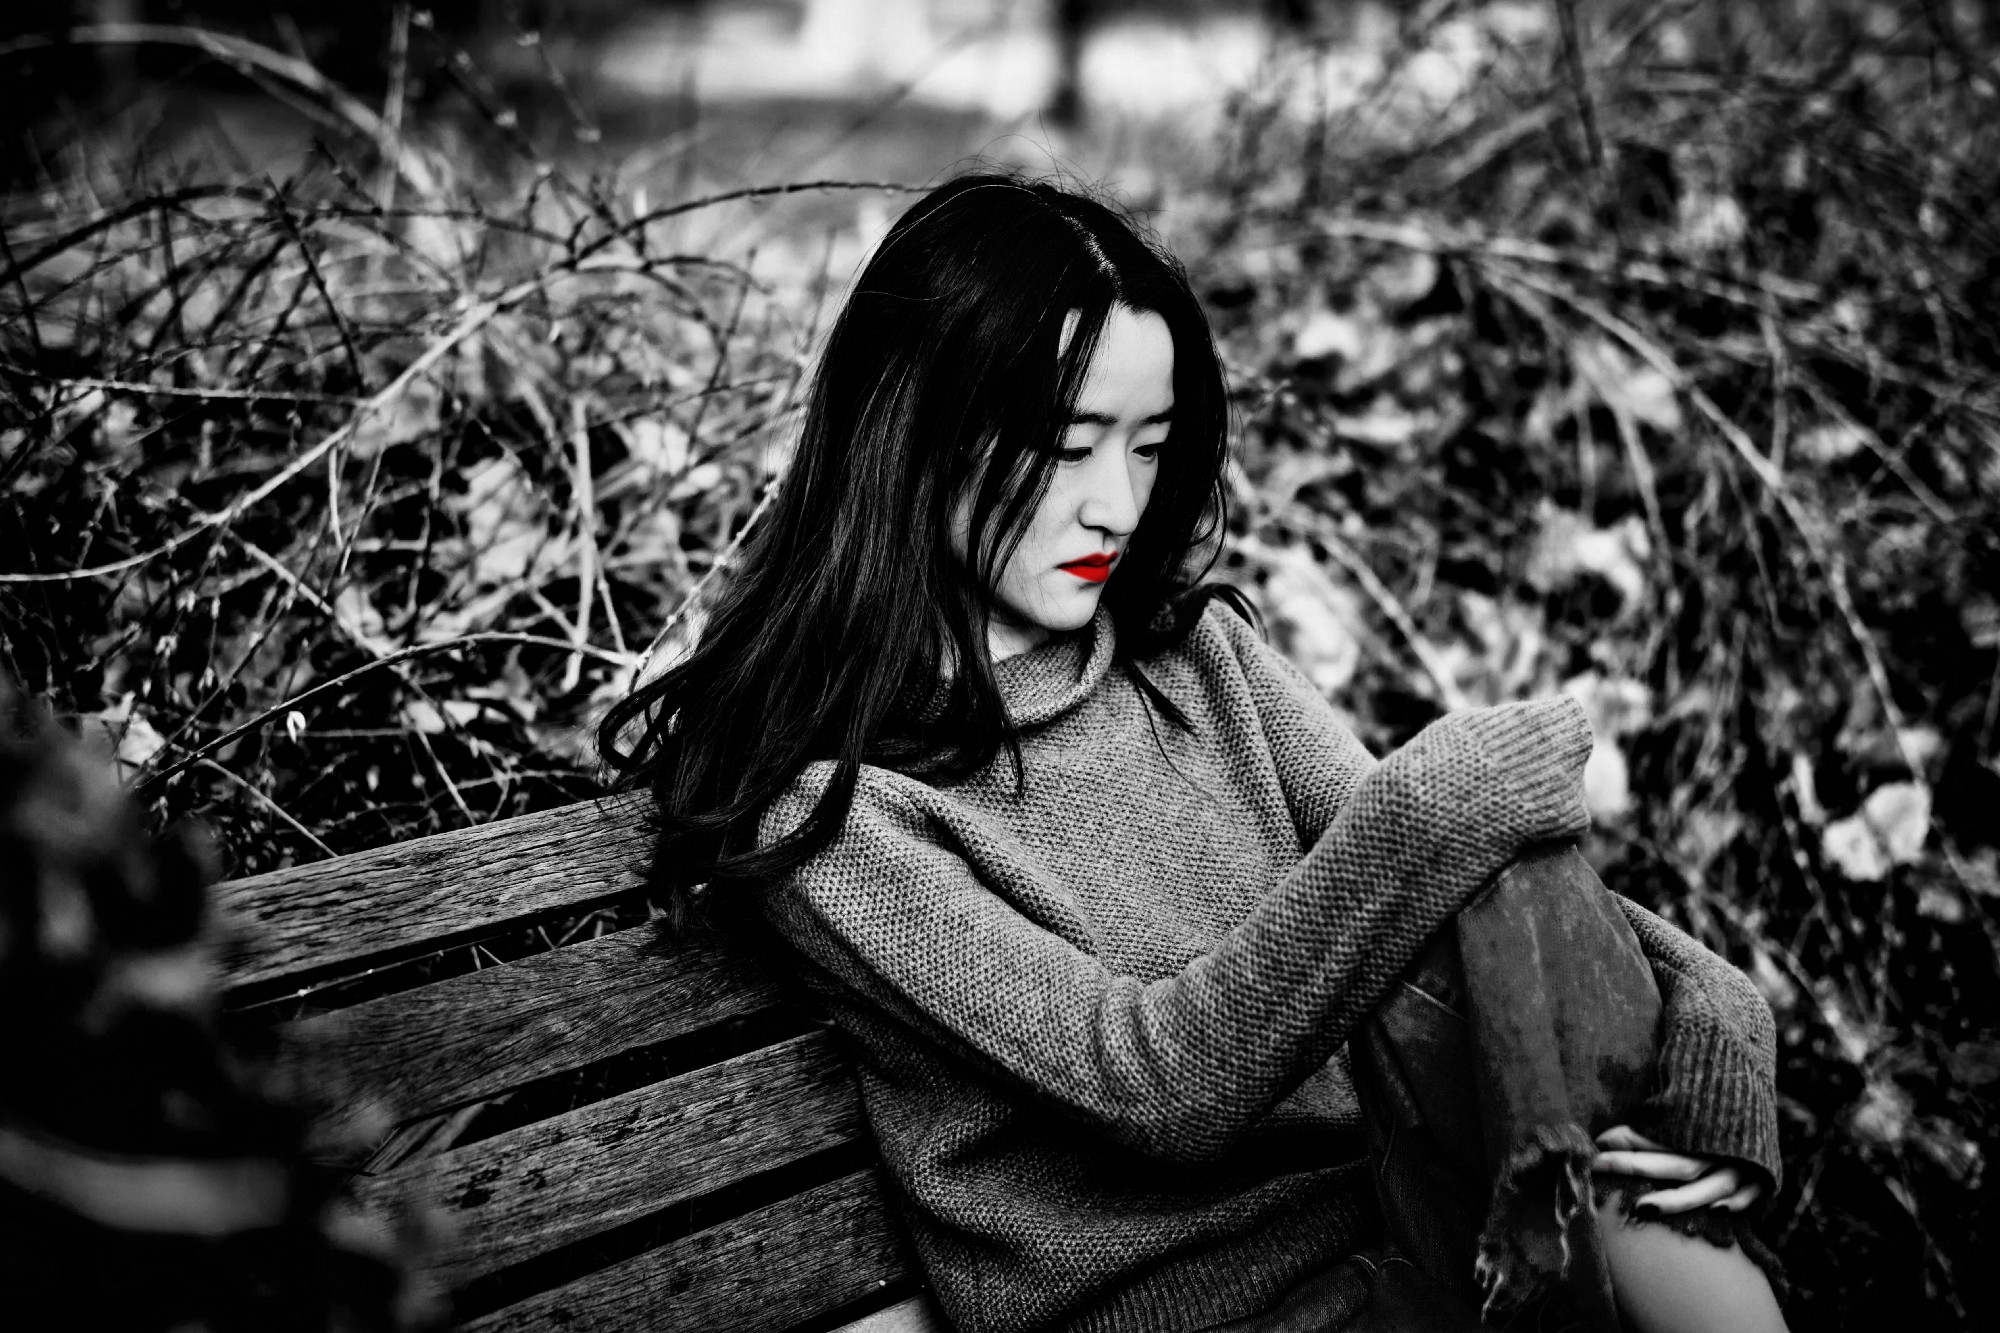 A black and white image of a sad Asian woman on a park bench. Her lips are red.